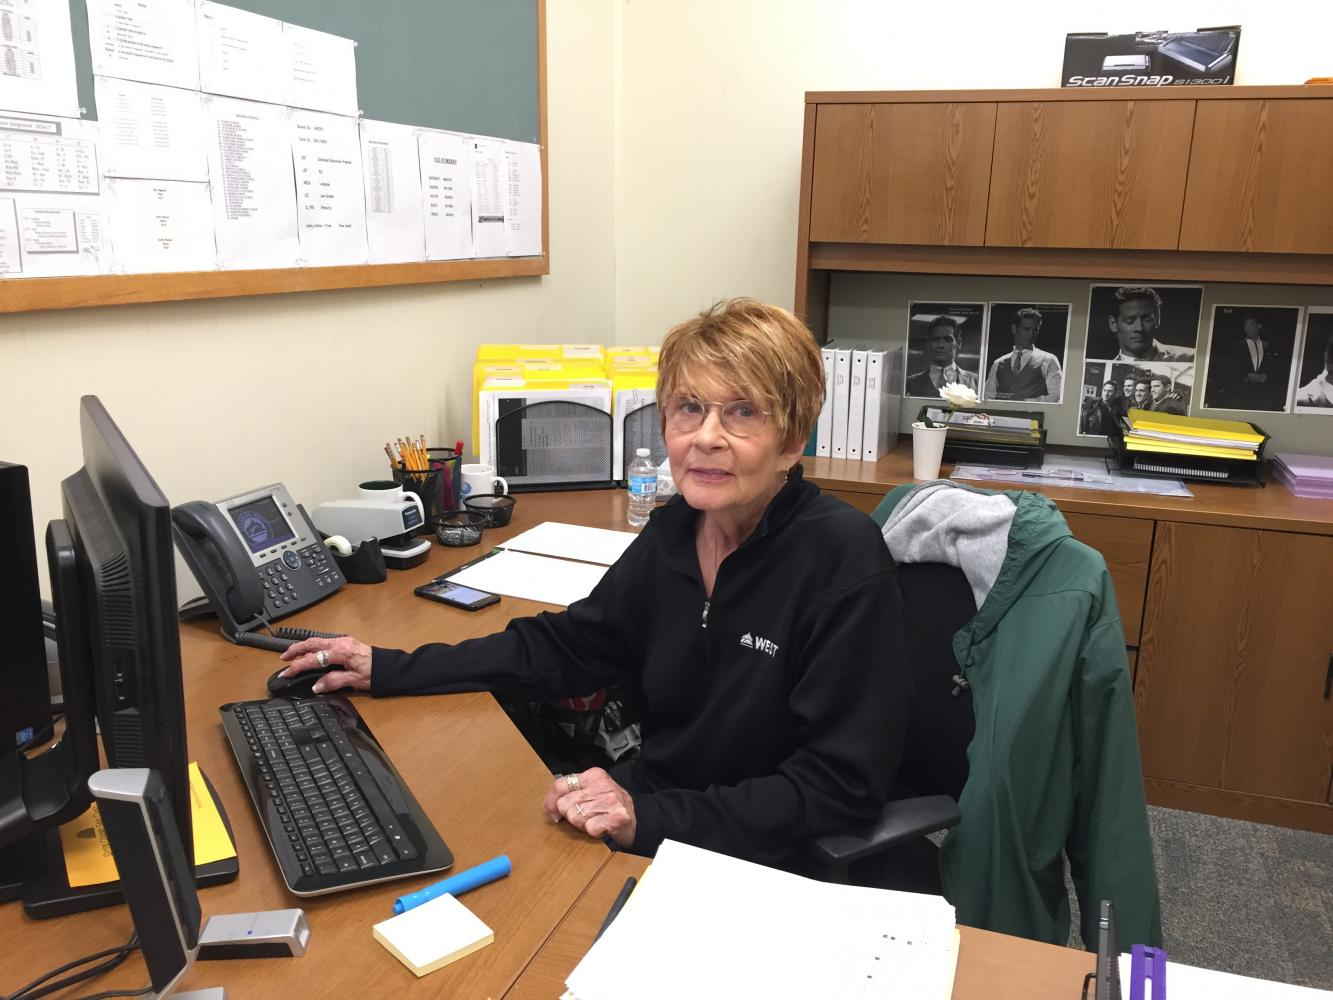 Mrs. Dawrant has been a data entry specialist at Glenbard West for almost 35 years.